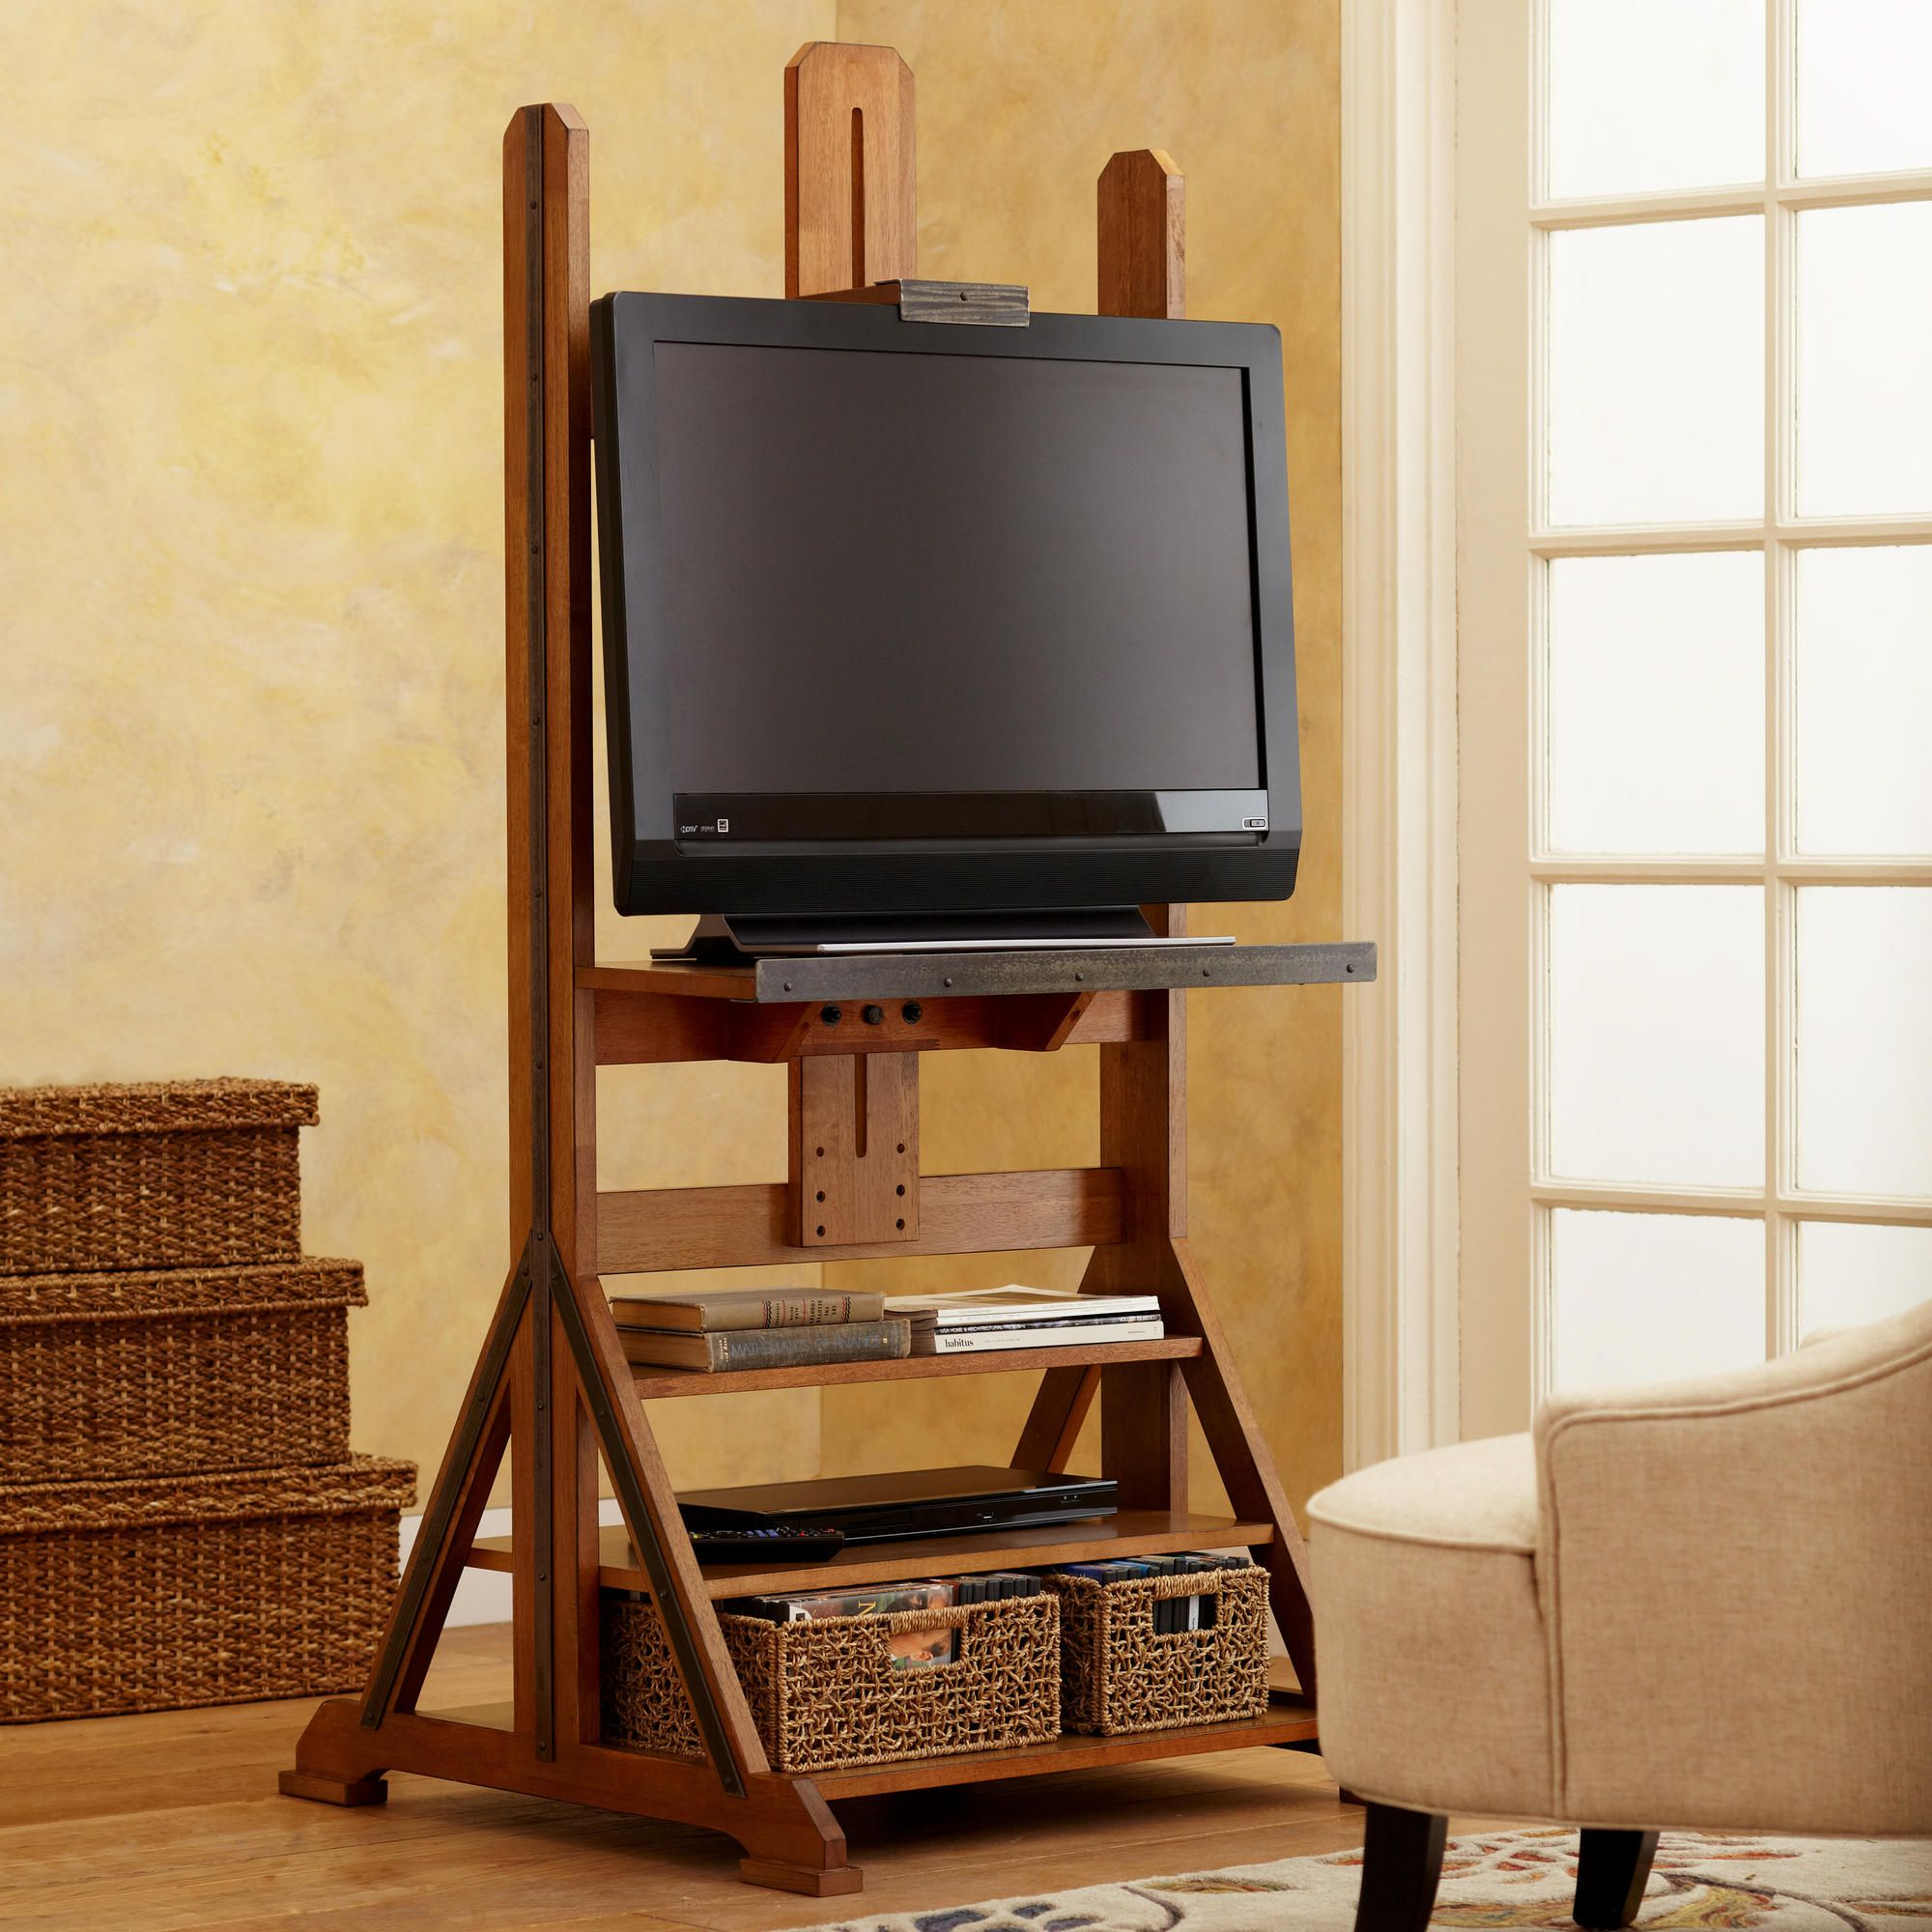 Easel Media Stand | Storage room, Media storage and Apartment ideas